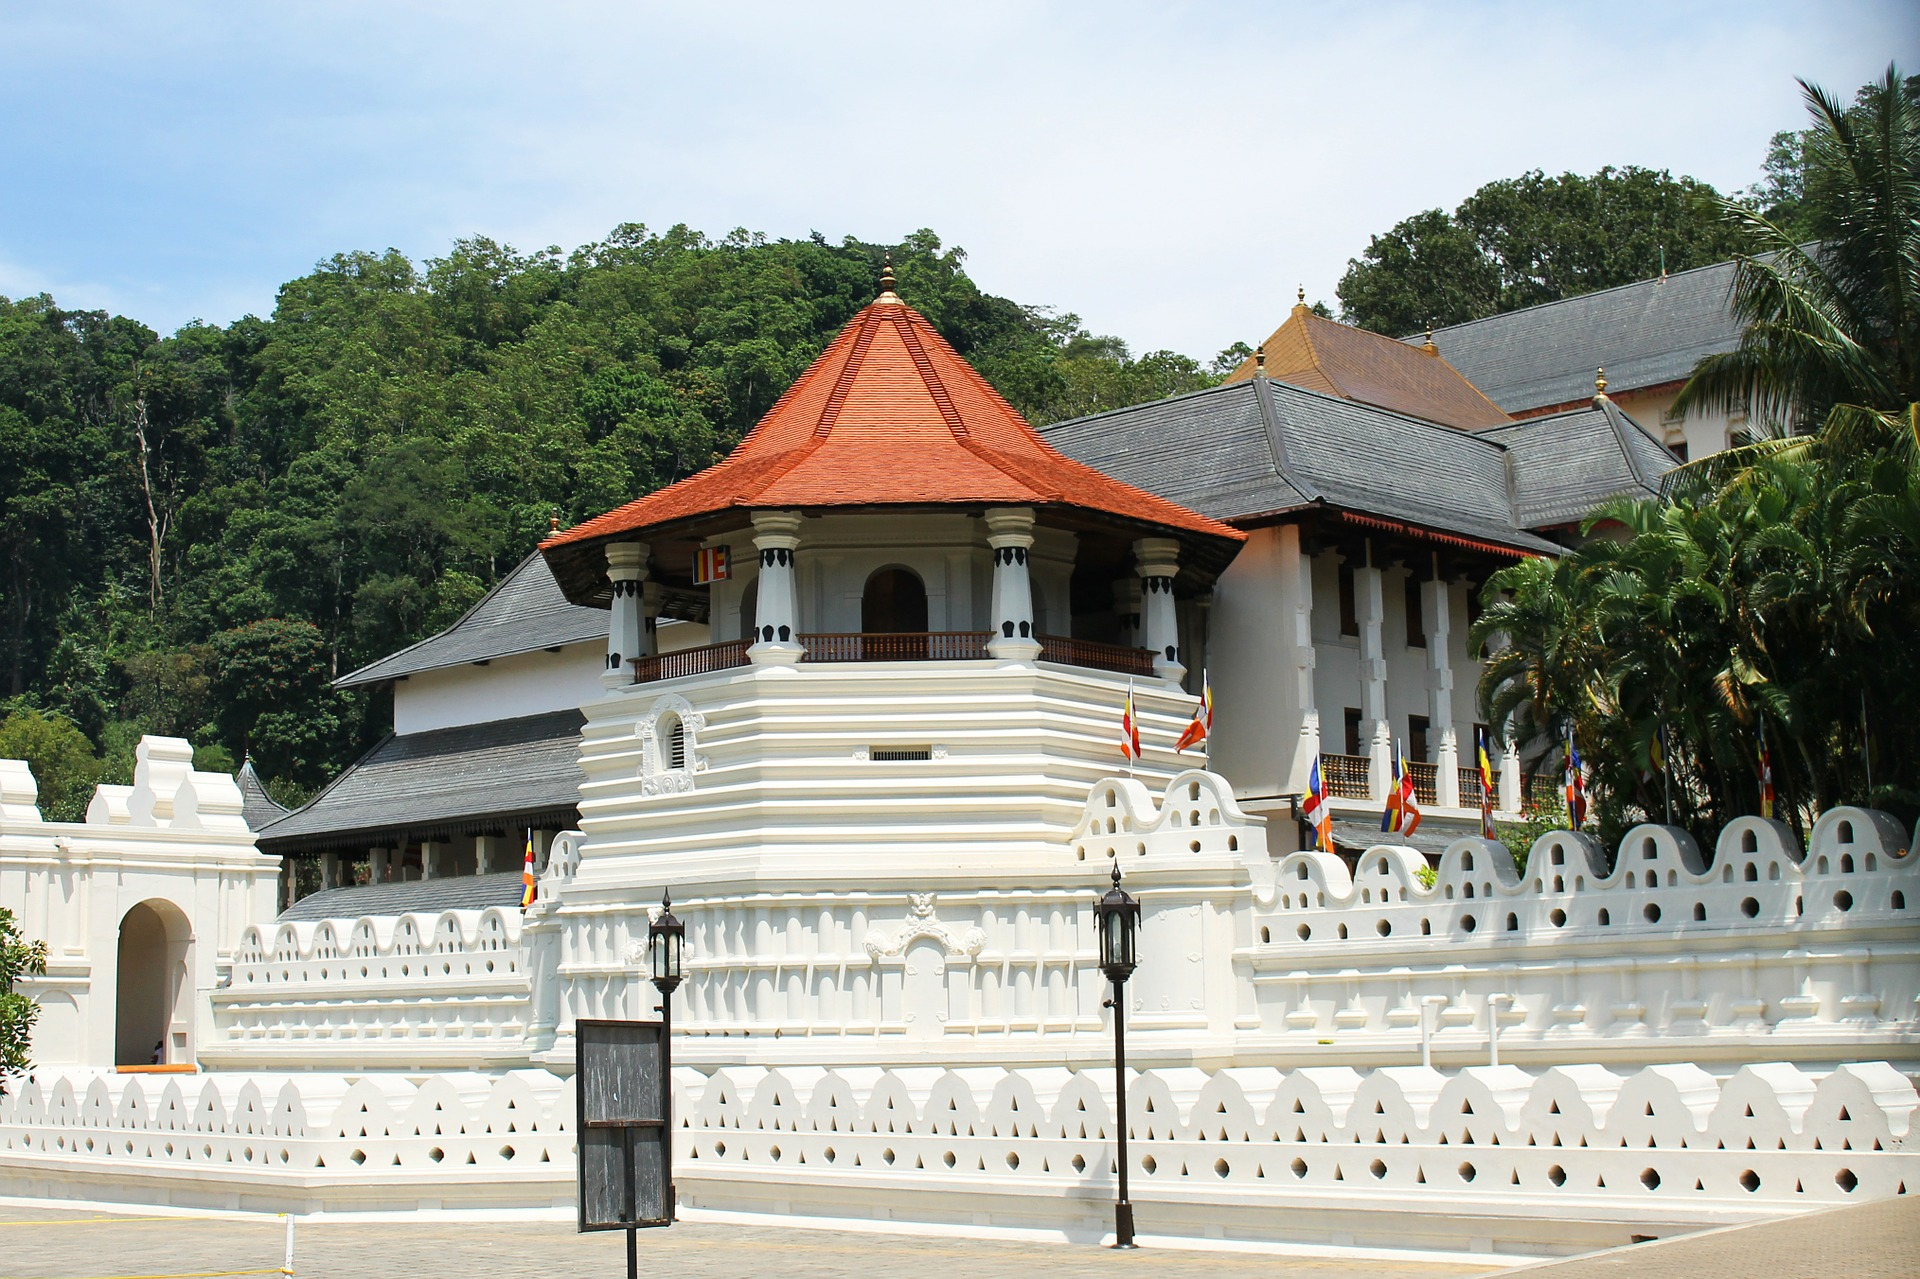 Sri Lanka In Style  - Temple of the Sacred Tooth Relic, Kandy, Sri Lanka